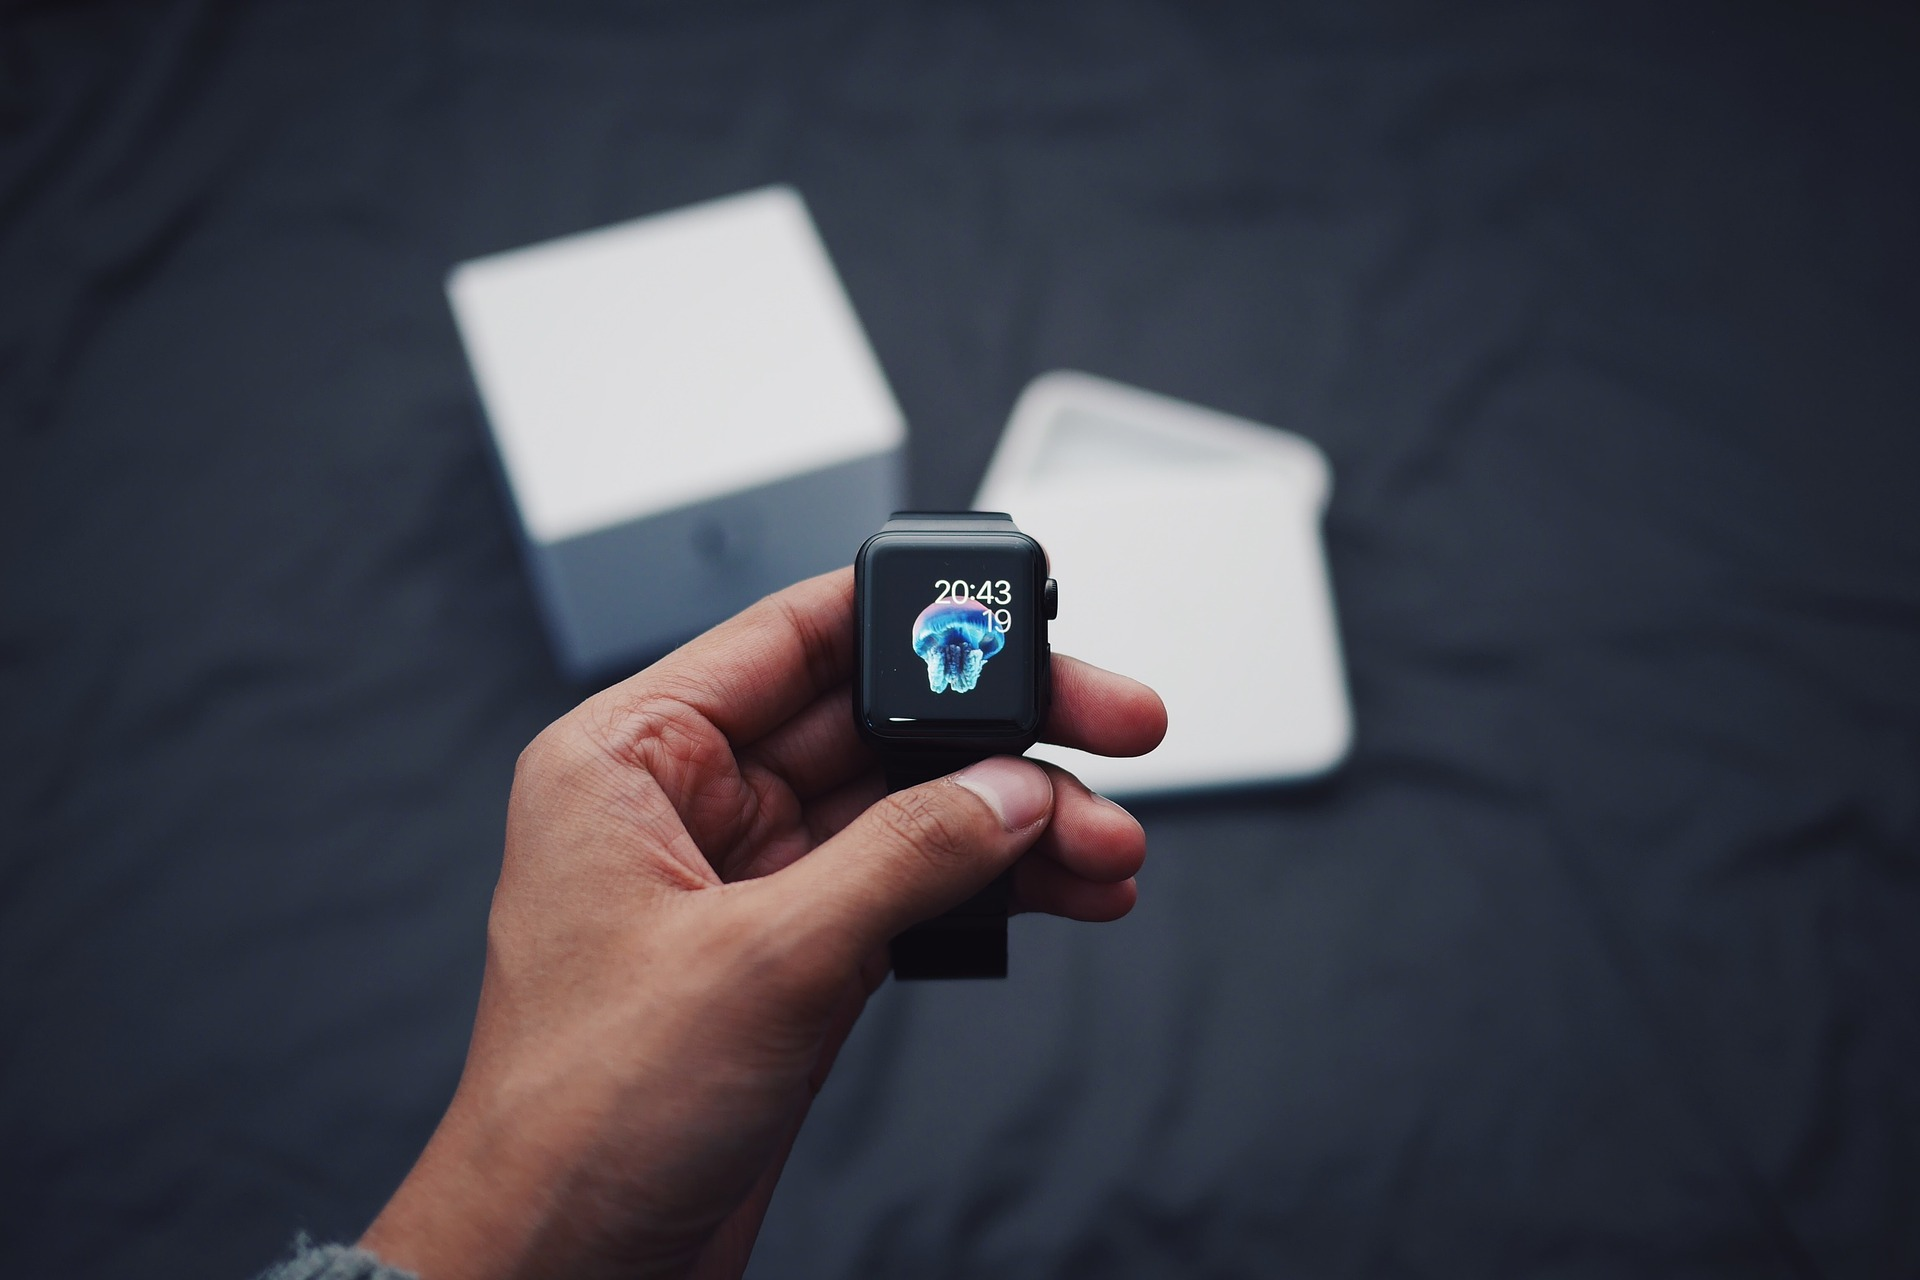 How an Almost-Free Apple Watch Could Cost More Than You Thought